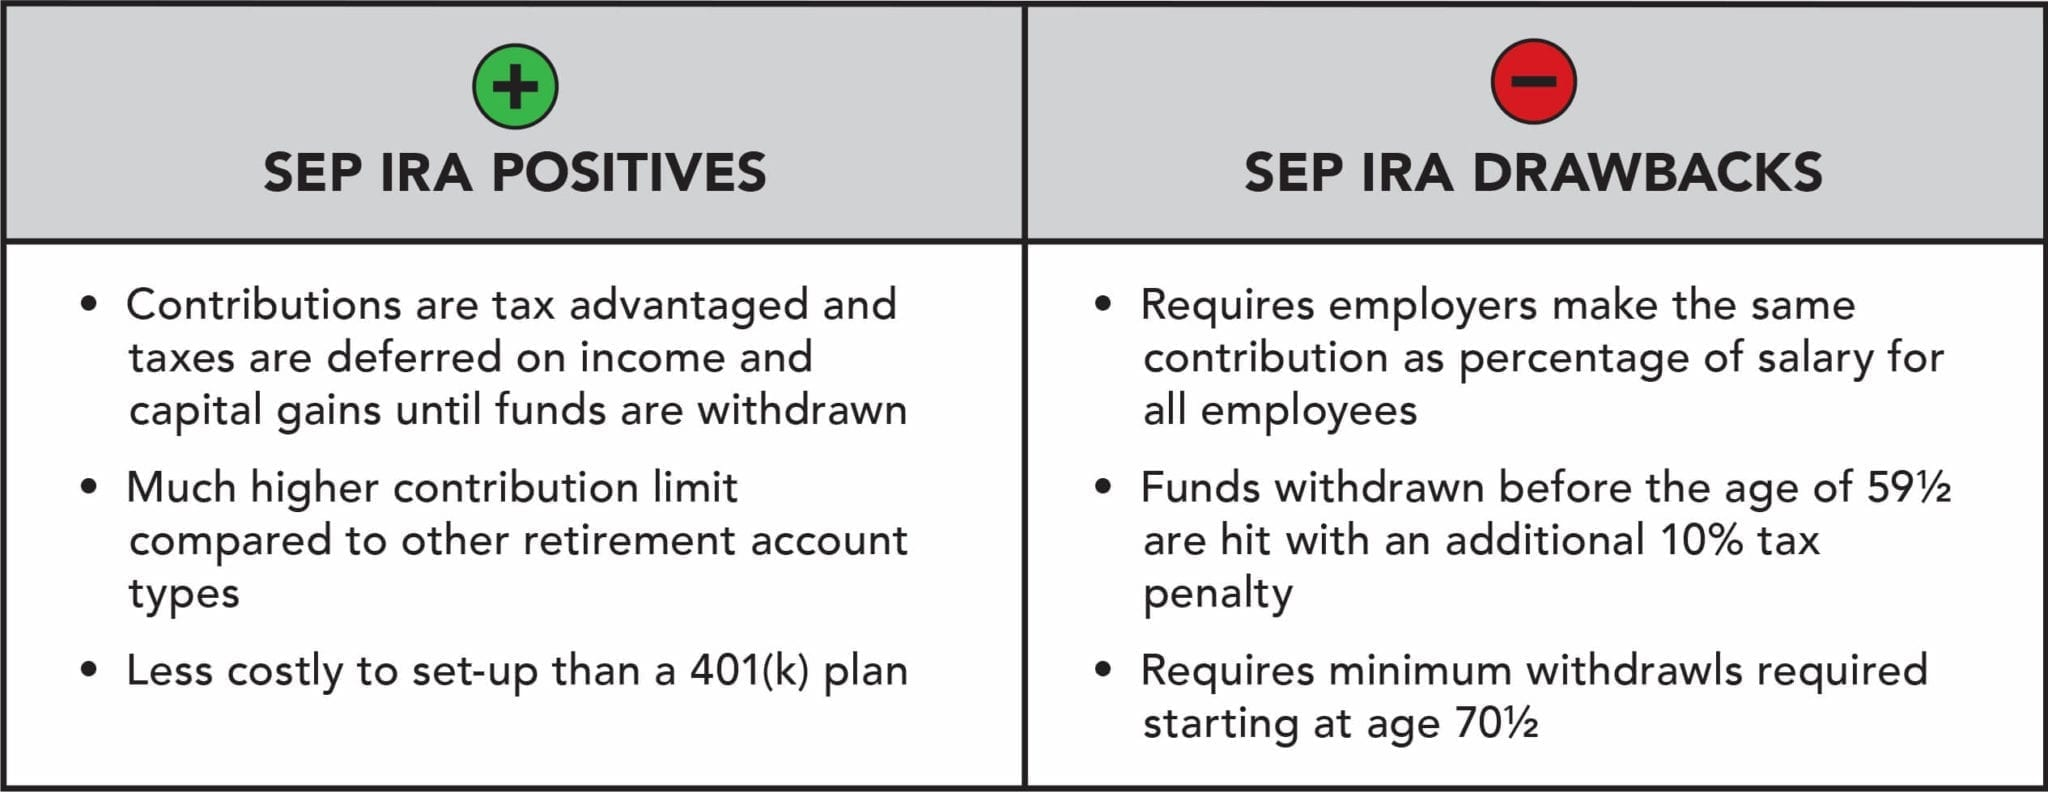 The SEP IRA has several beenfits but also some limitations.